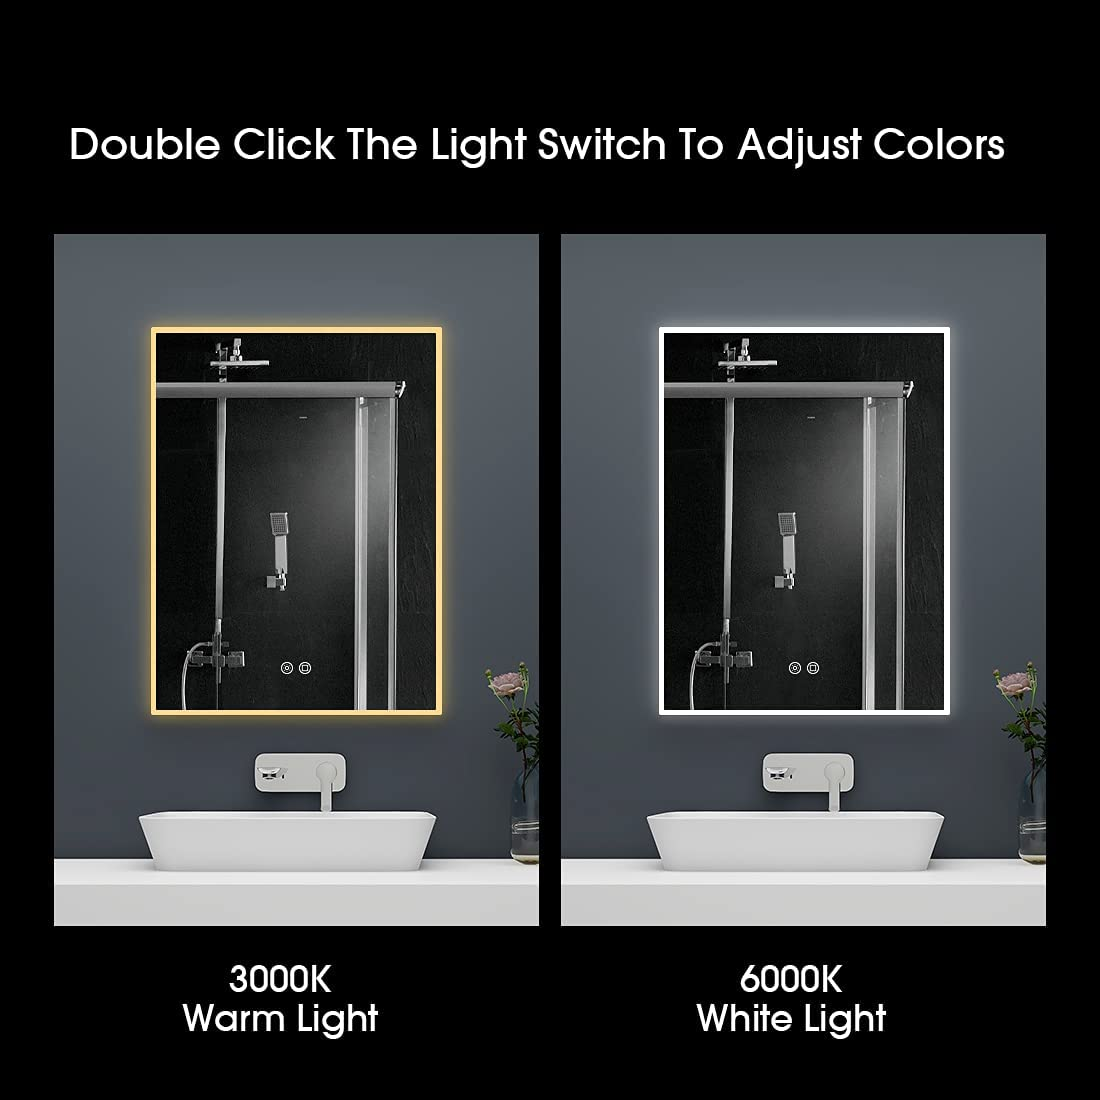 Buy Led Lighted Bathroom Mirror With Double Touch Anti Fog Bathroom Mirror With Adjustable Colors Warm Light White Light Wall Mirror With Dimmable Brightness Vertical Horizontal 31 5 X23 6 Online In Vietnam